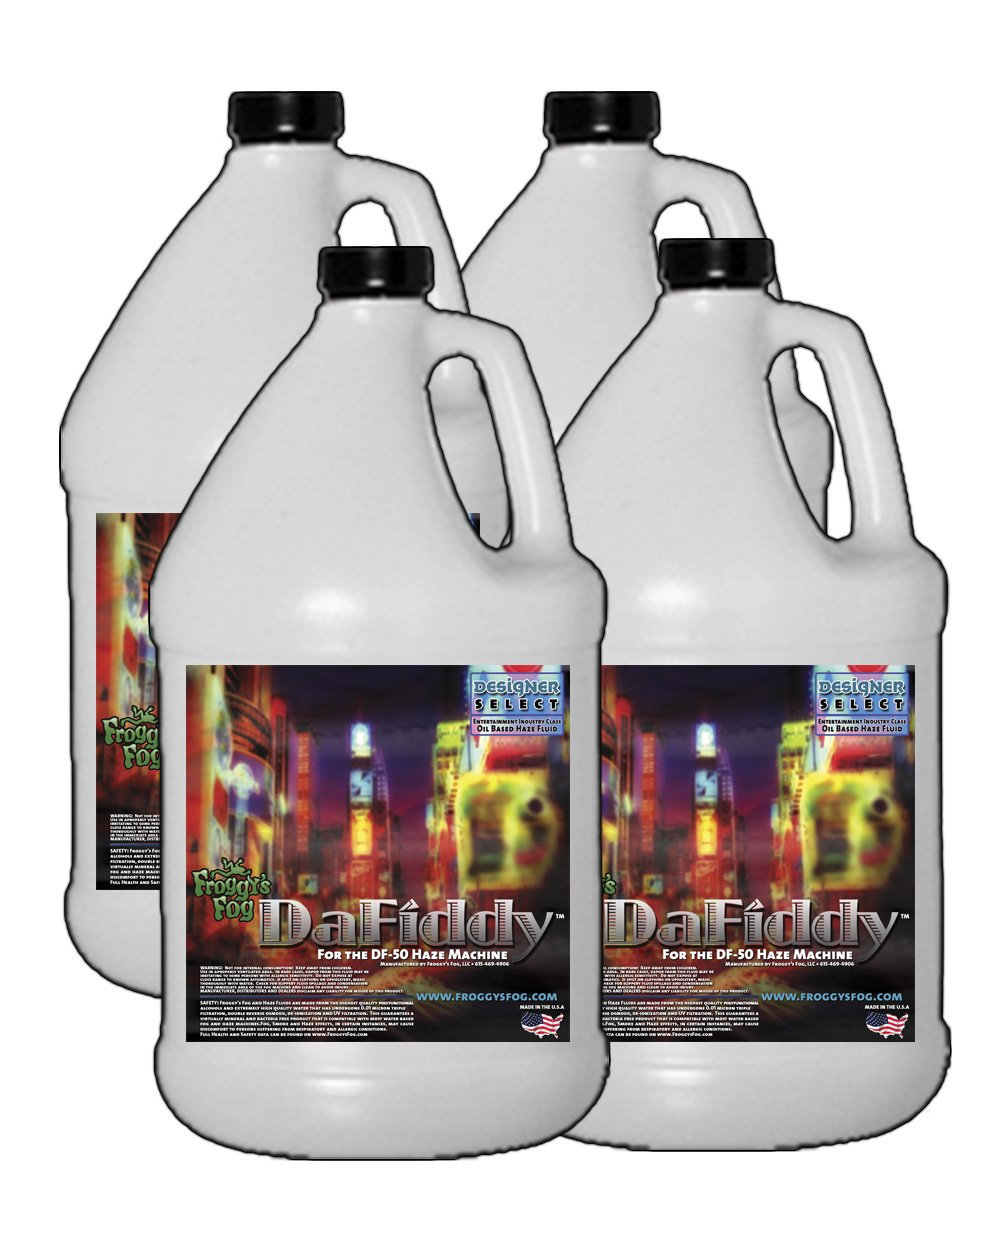 4 Gal - DaFiddy - Oil-Based and Oil-less Haze Juice Fluid for DF-50 Machine Fluid Type: Oil-Based Fluid by Froggys Fog